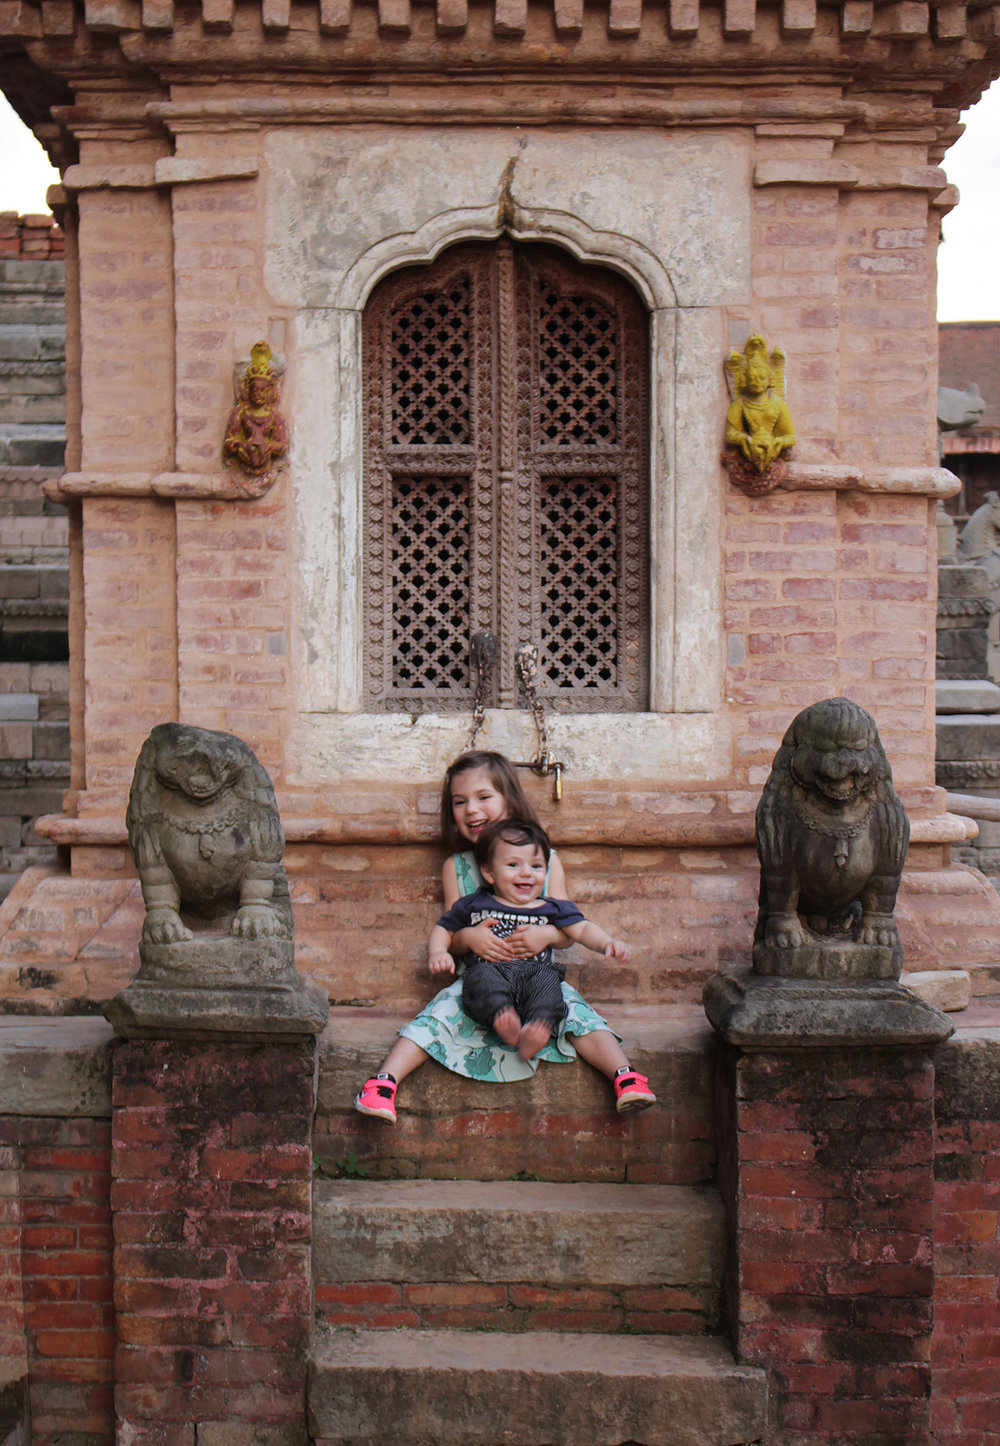 At the point when I was stood on a Kathmandu street corner, clutching my tiny crying baby with a bloodied nose, waiting for our lift to the hospital, I was done. I could honestly have flown home there and then. But then I reminded myself that this stuff happens wherever you are. -